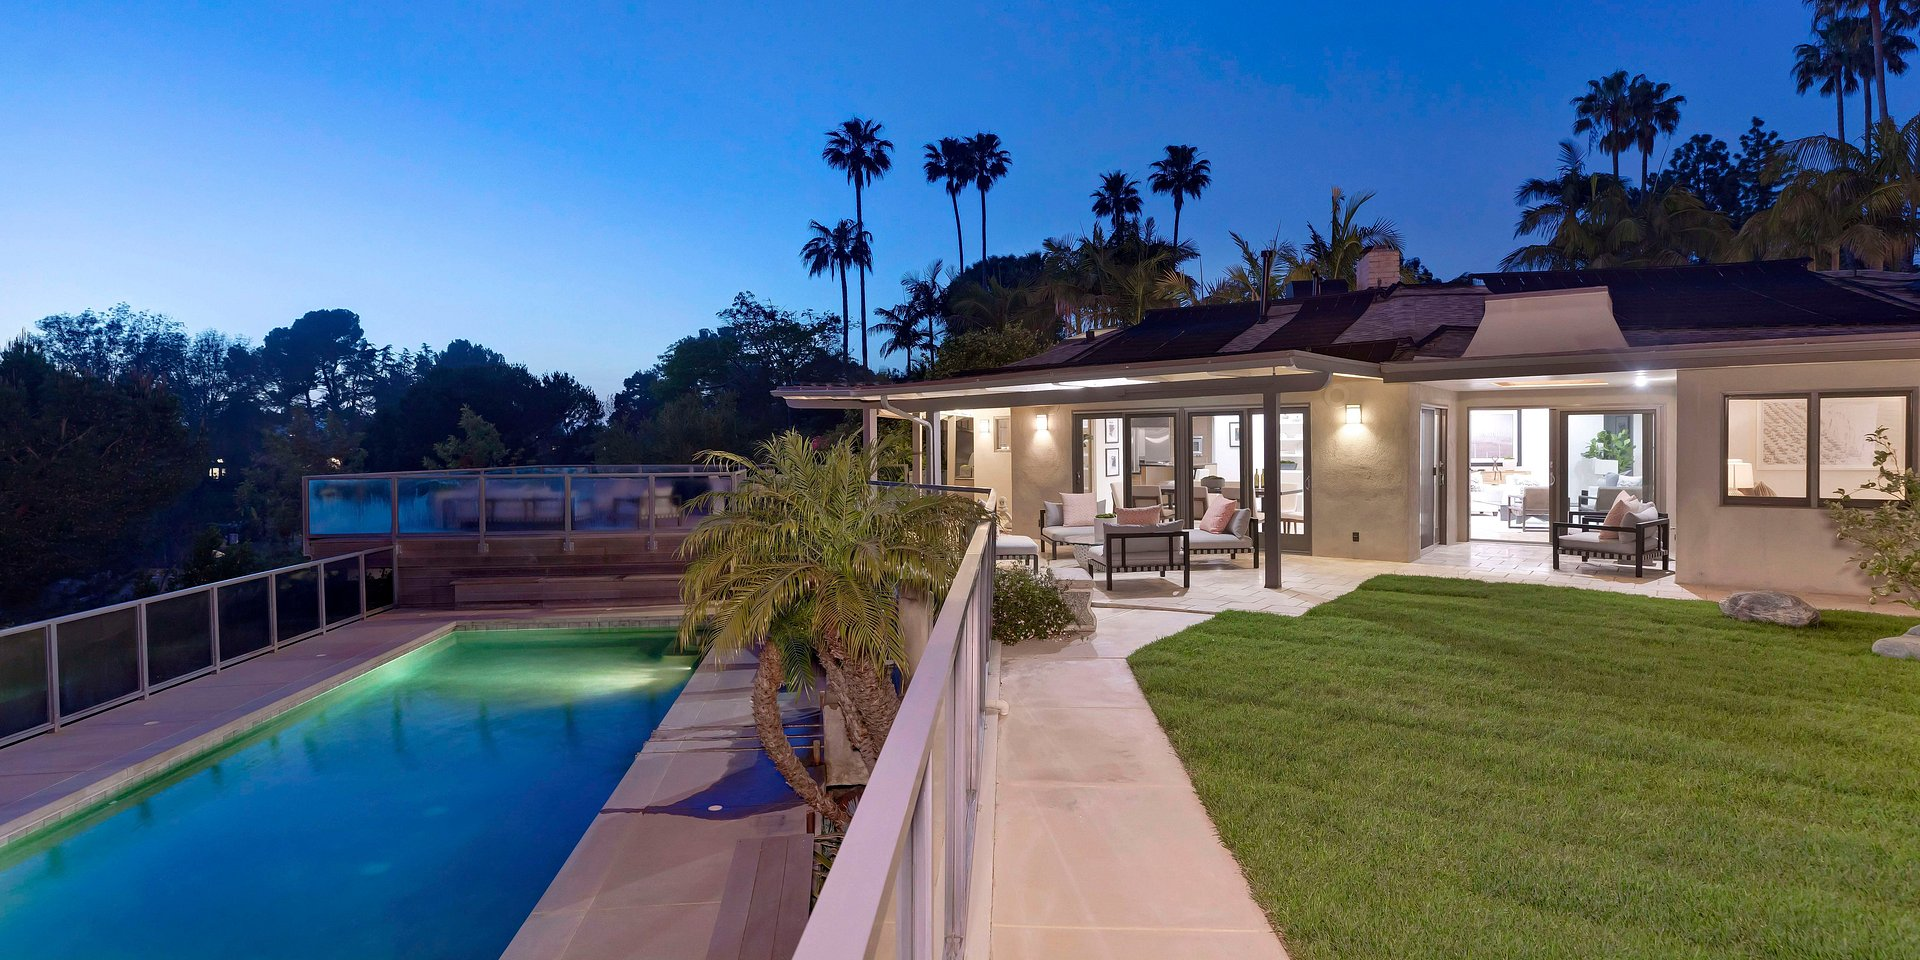 Coldwell Banker Residential Brokerage Lists Bel Air Property for $2.899 Million